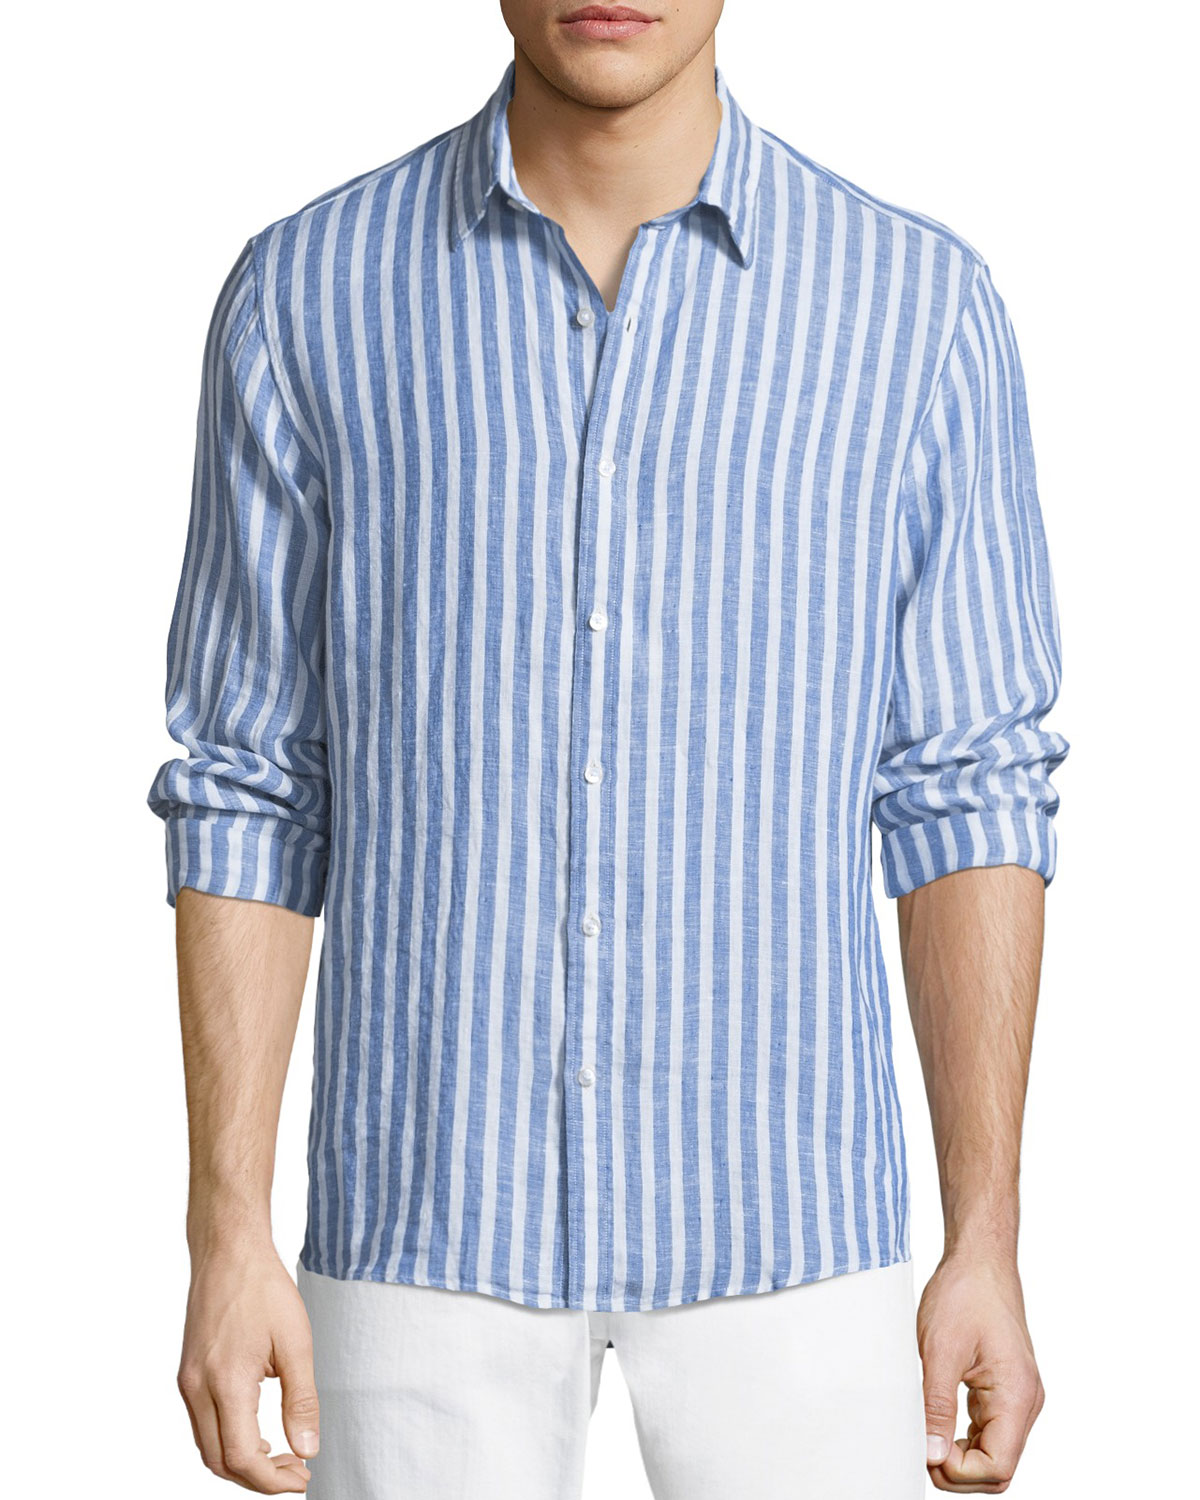 Men's Slim Fit Striped Linen Button-Down Shirt